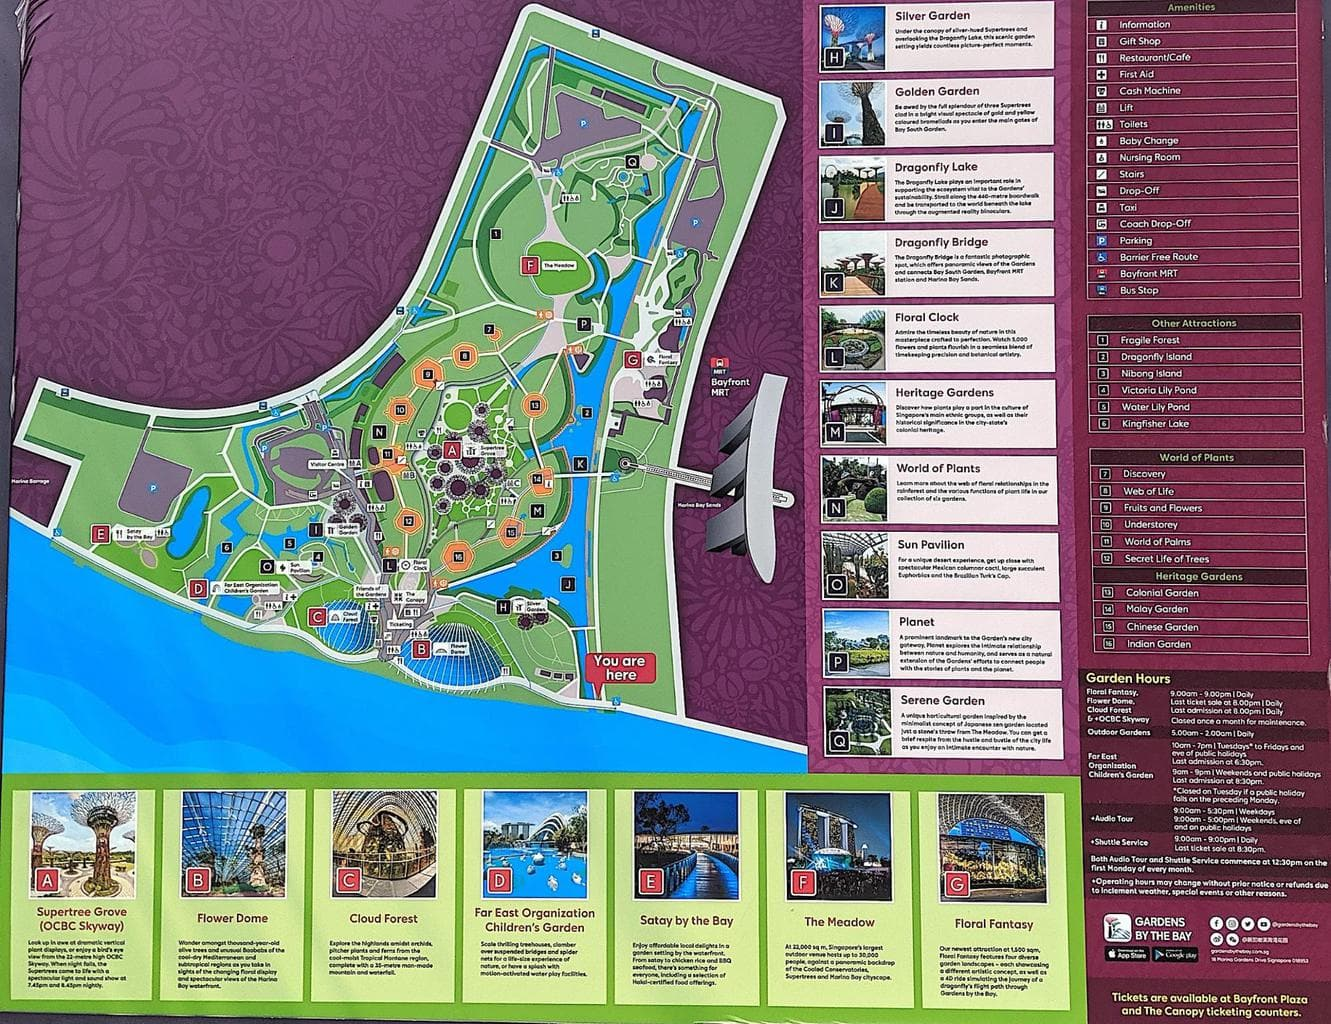 Map of Gardens by the Bay which you can find across the park